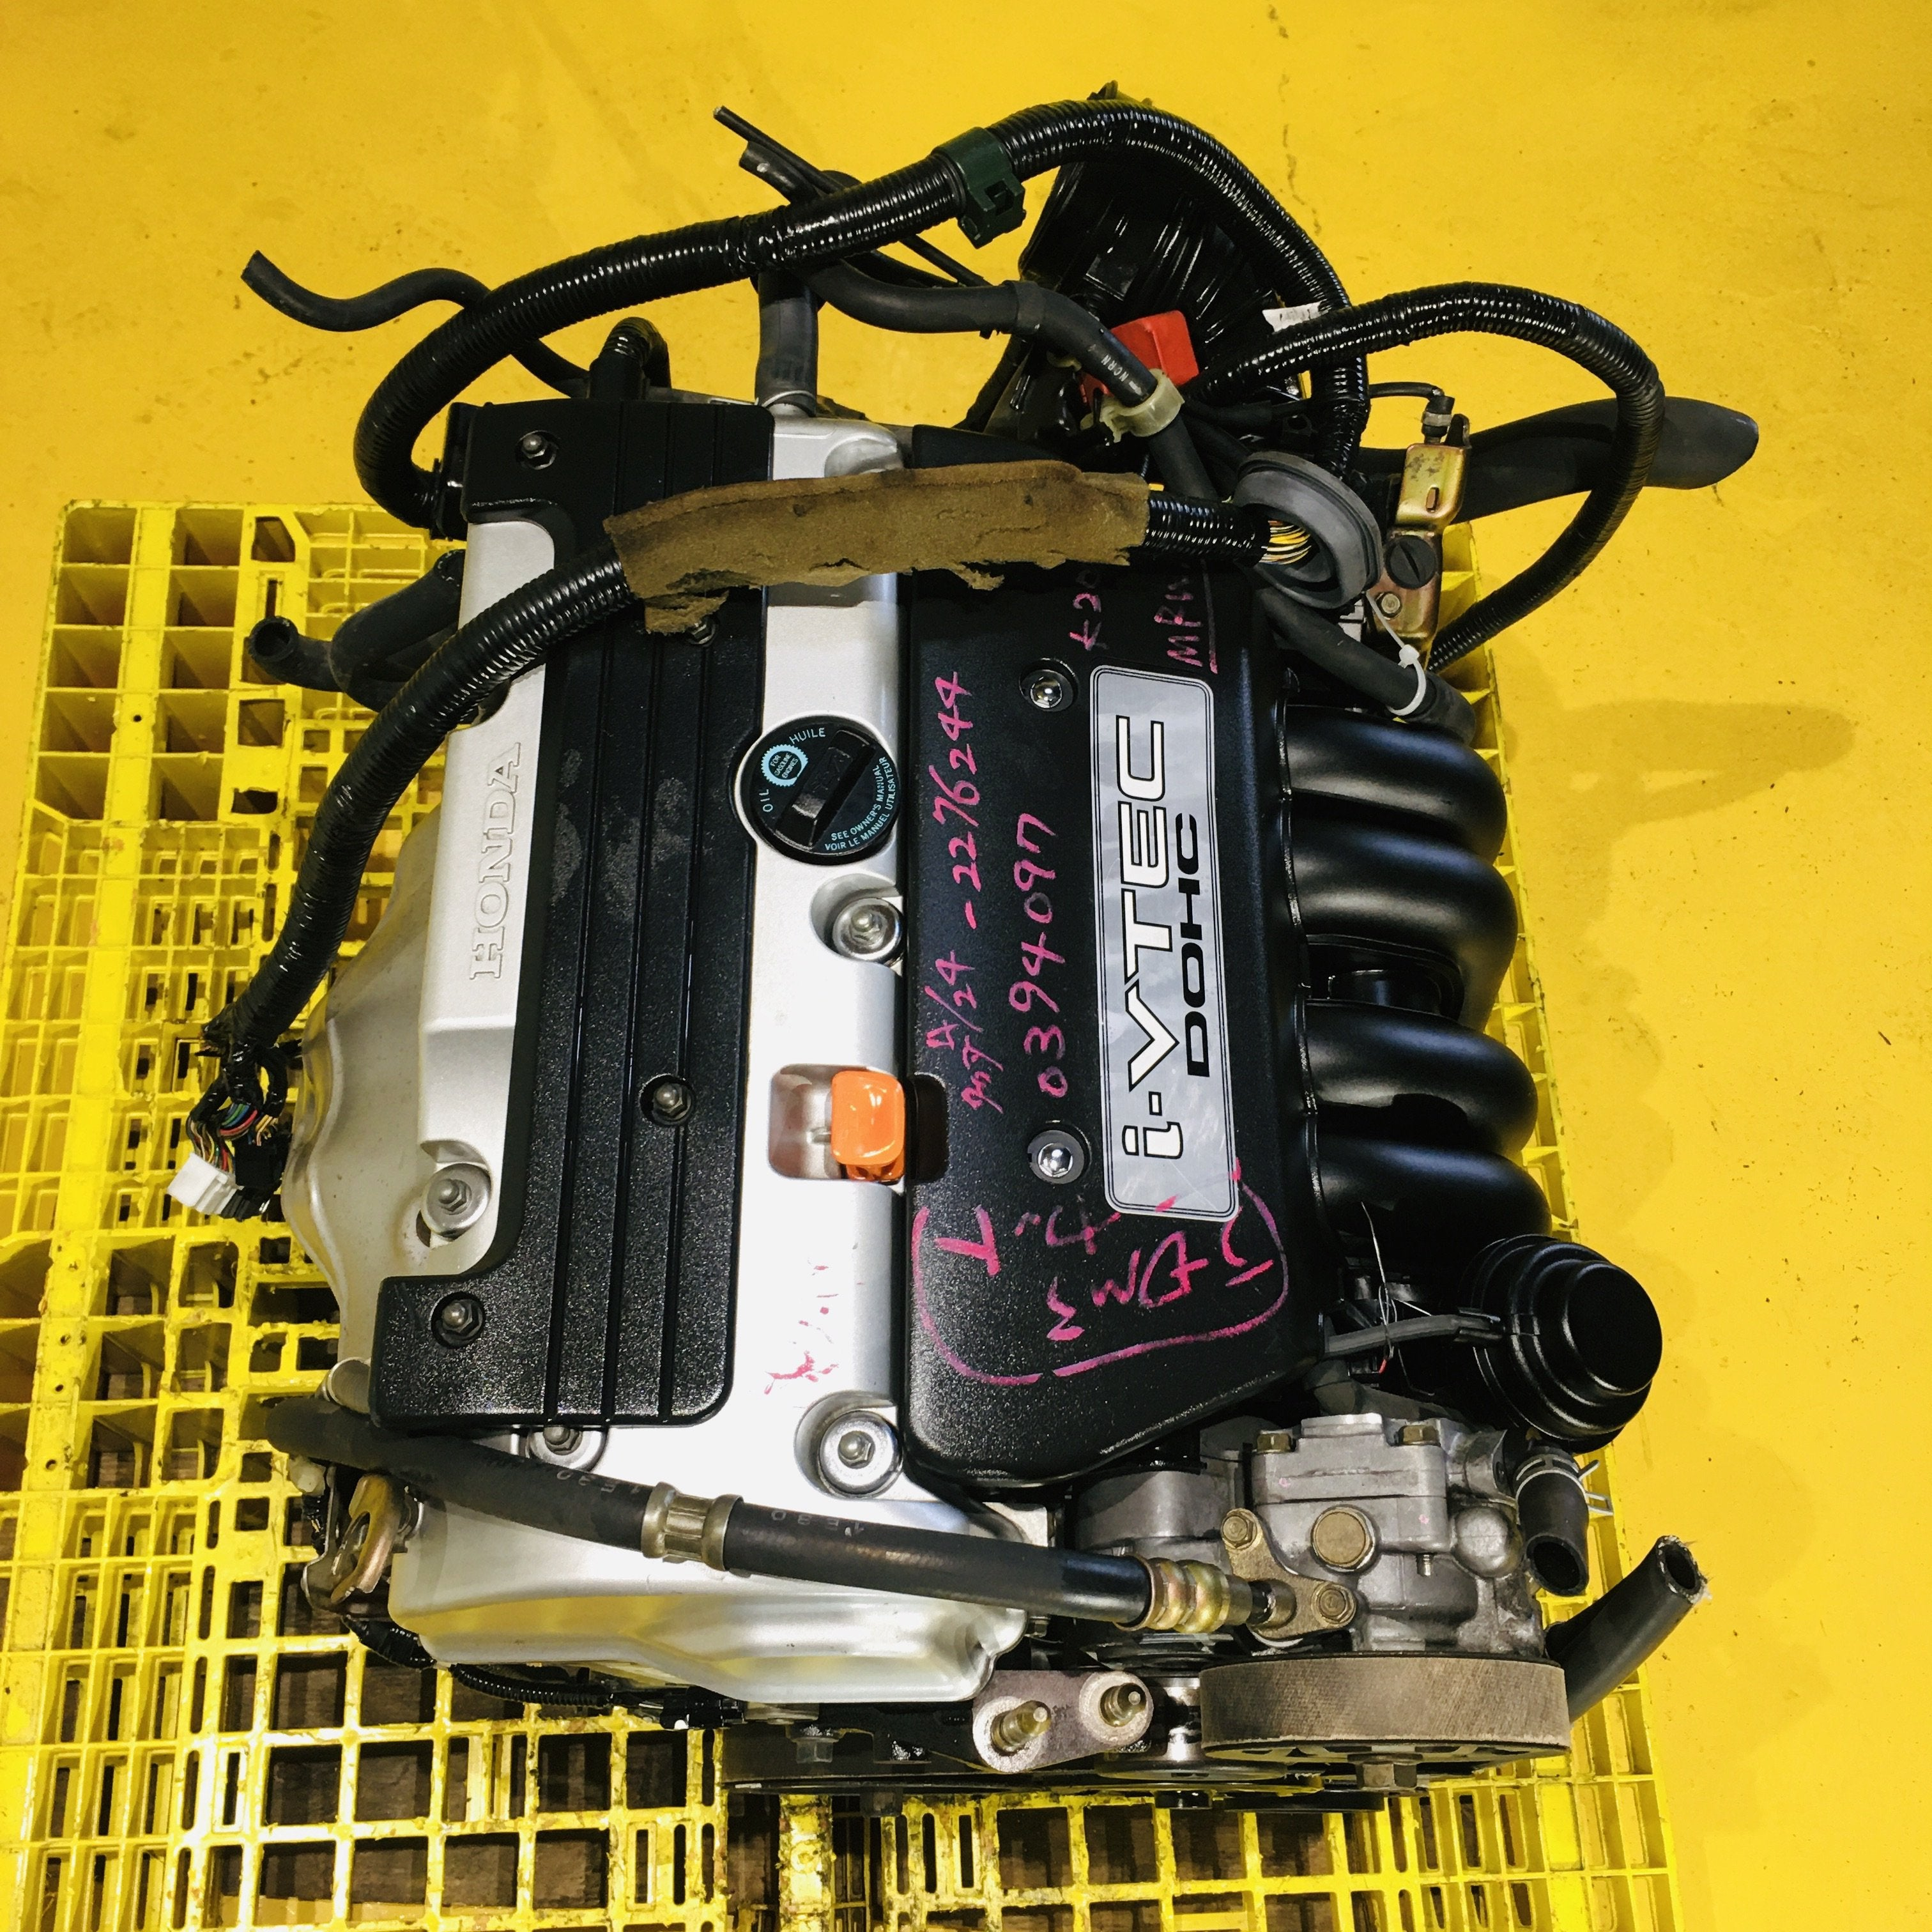 HONDA CIVIC SI (2002-2005) 2.0L DOHC VTEC JDM ENGINE SWAP #102 - K20A